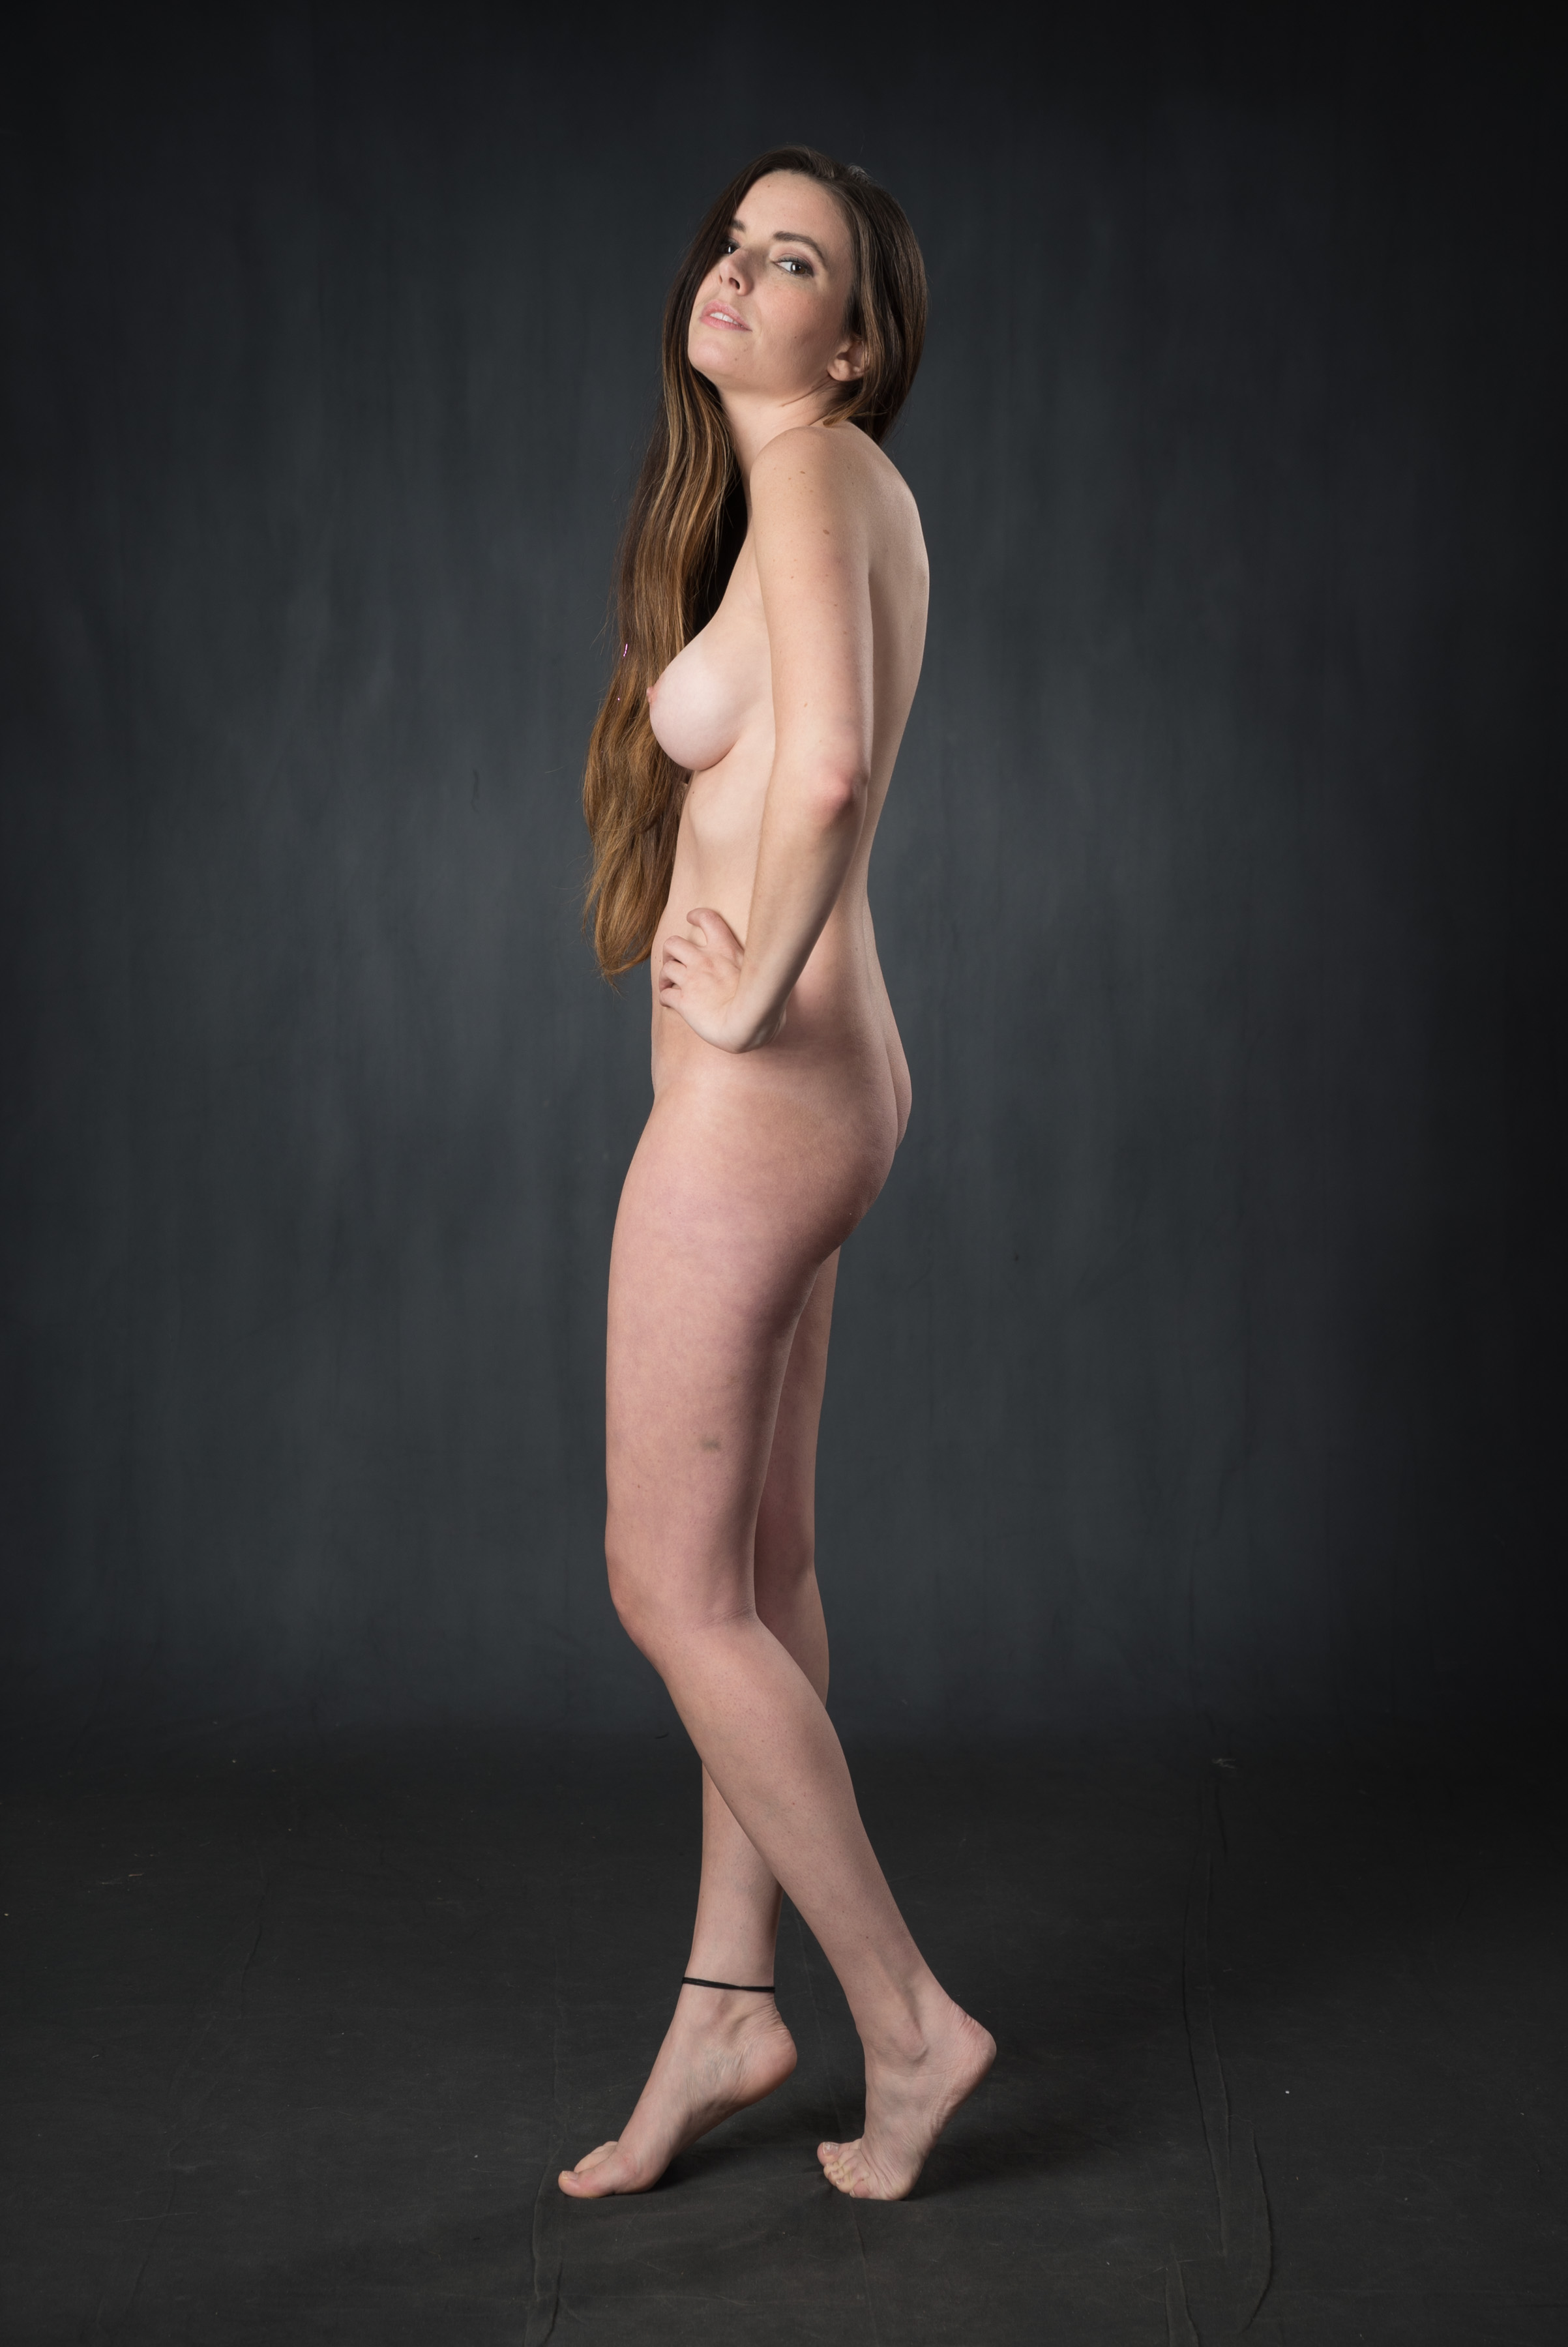 Nude Standing Poses 6